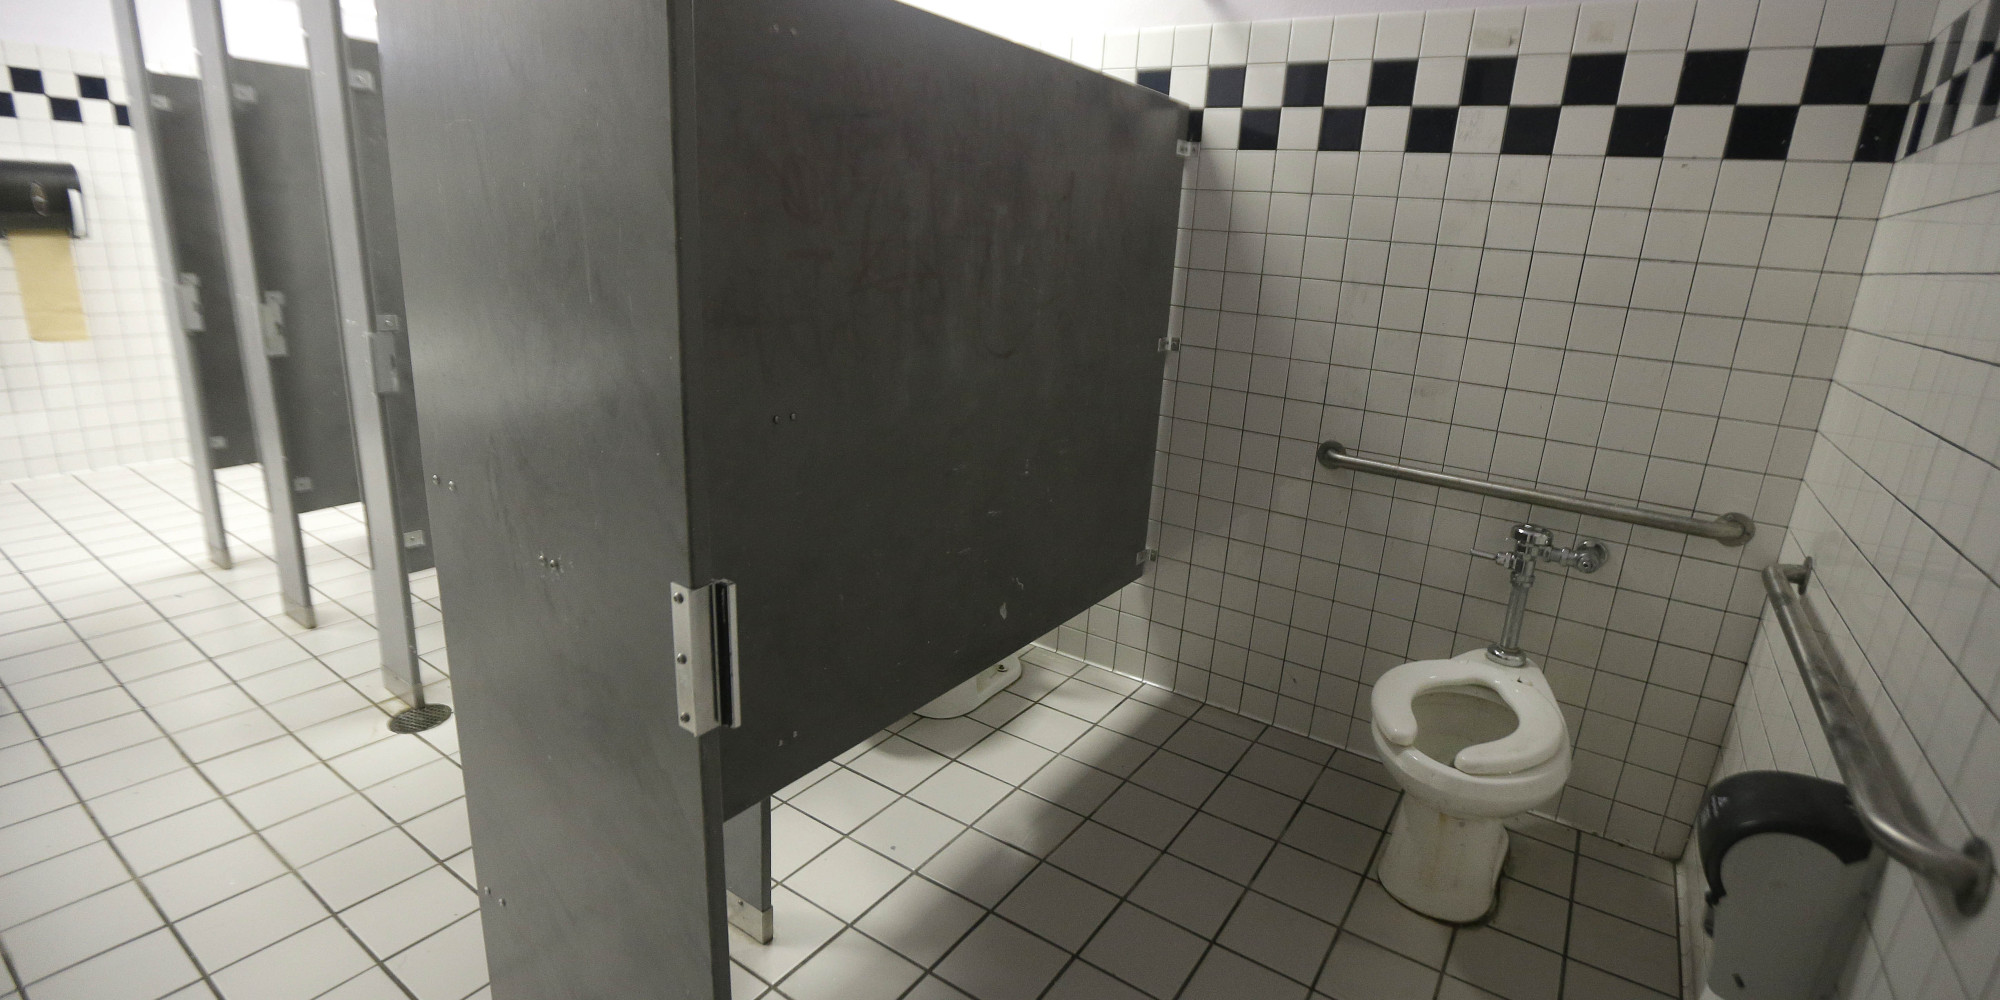 21 Daily Musings on Using the Public Bathroom  HuffPost